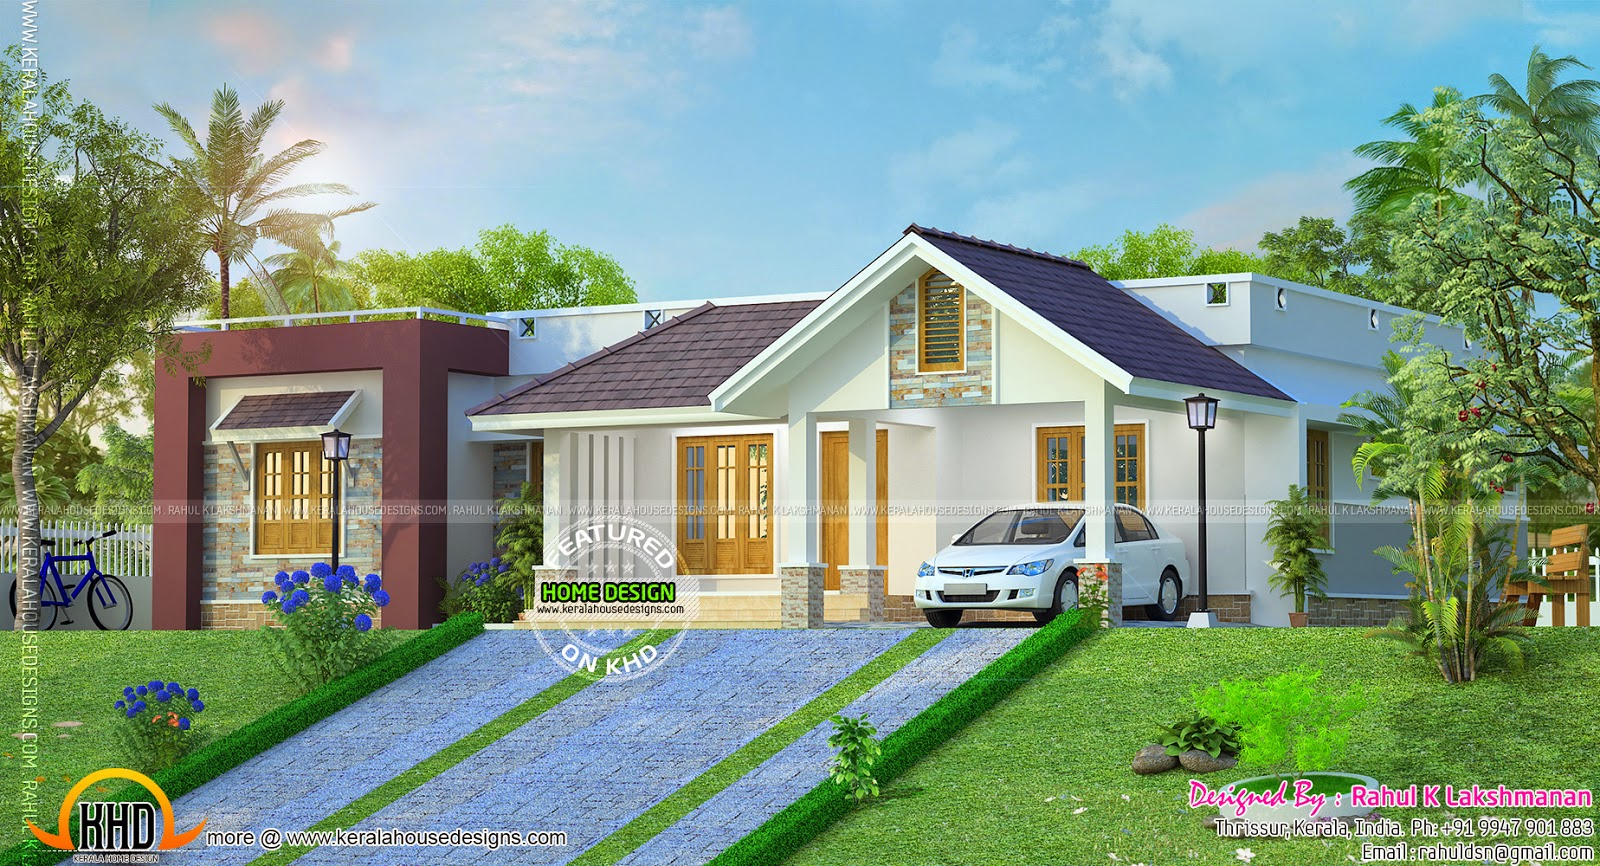 Hillside home plan - Kerala home design and floor plans